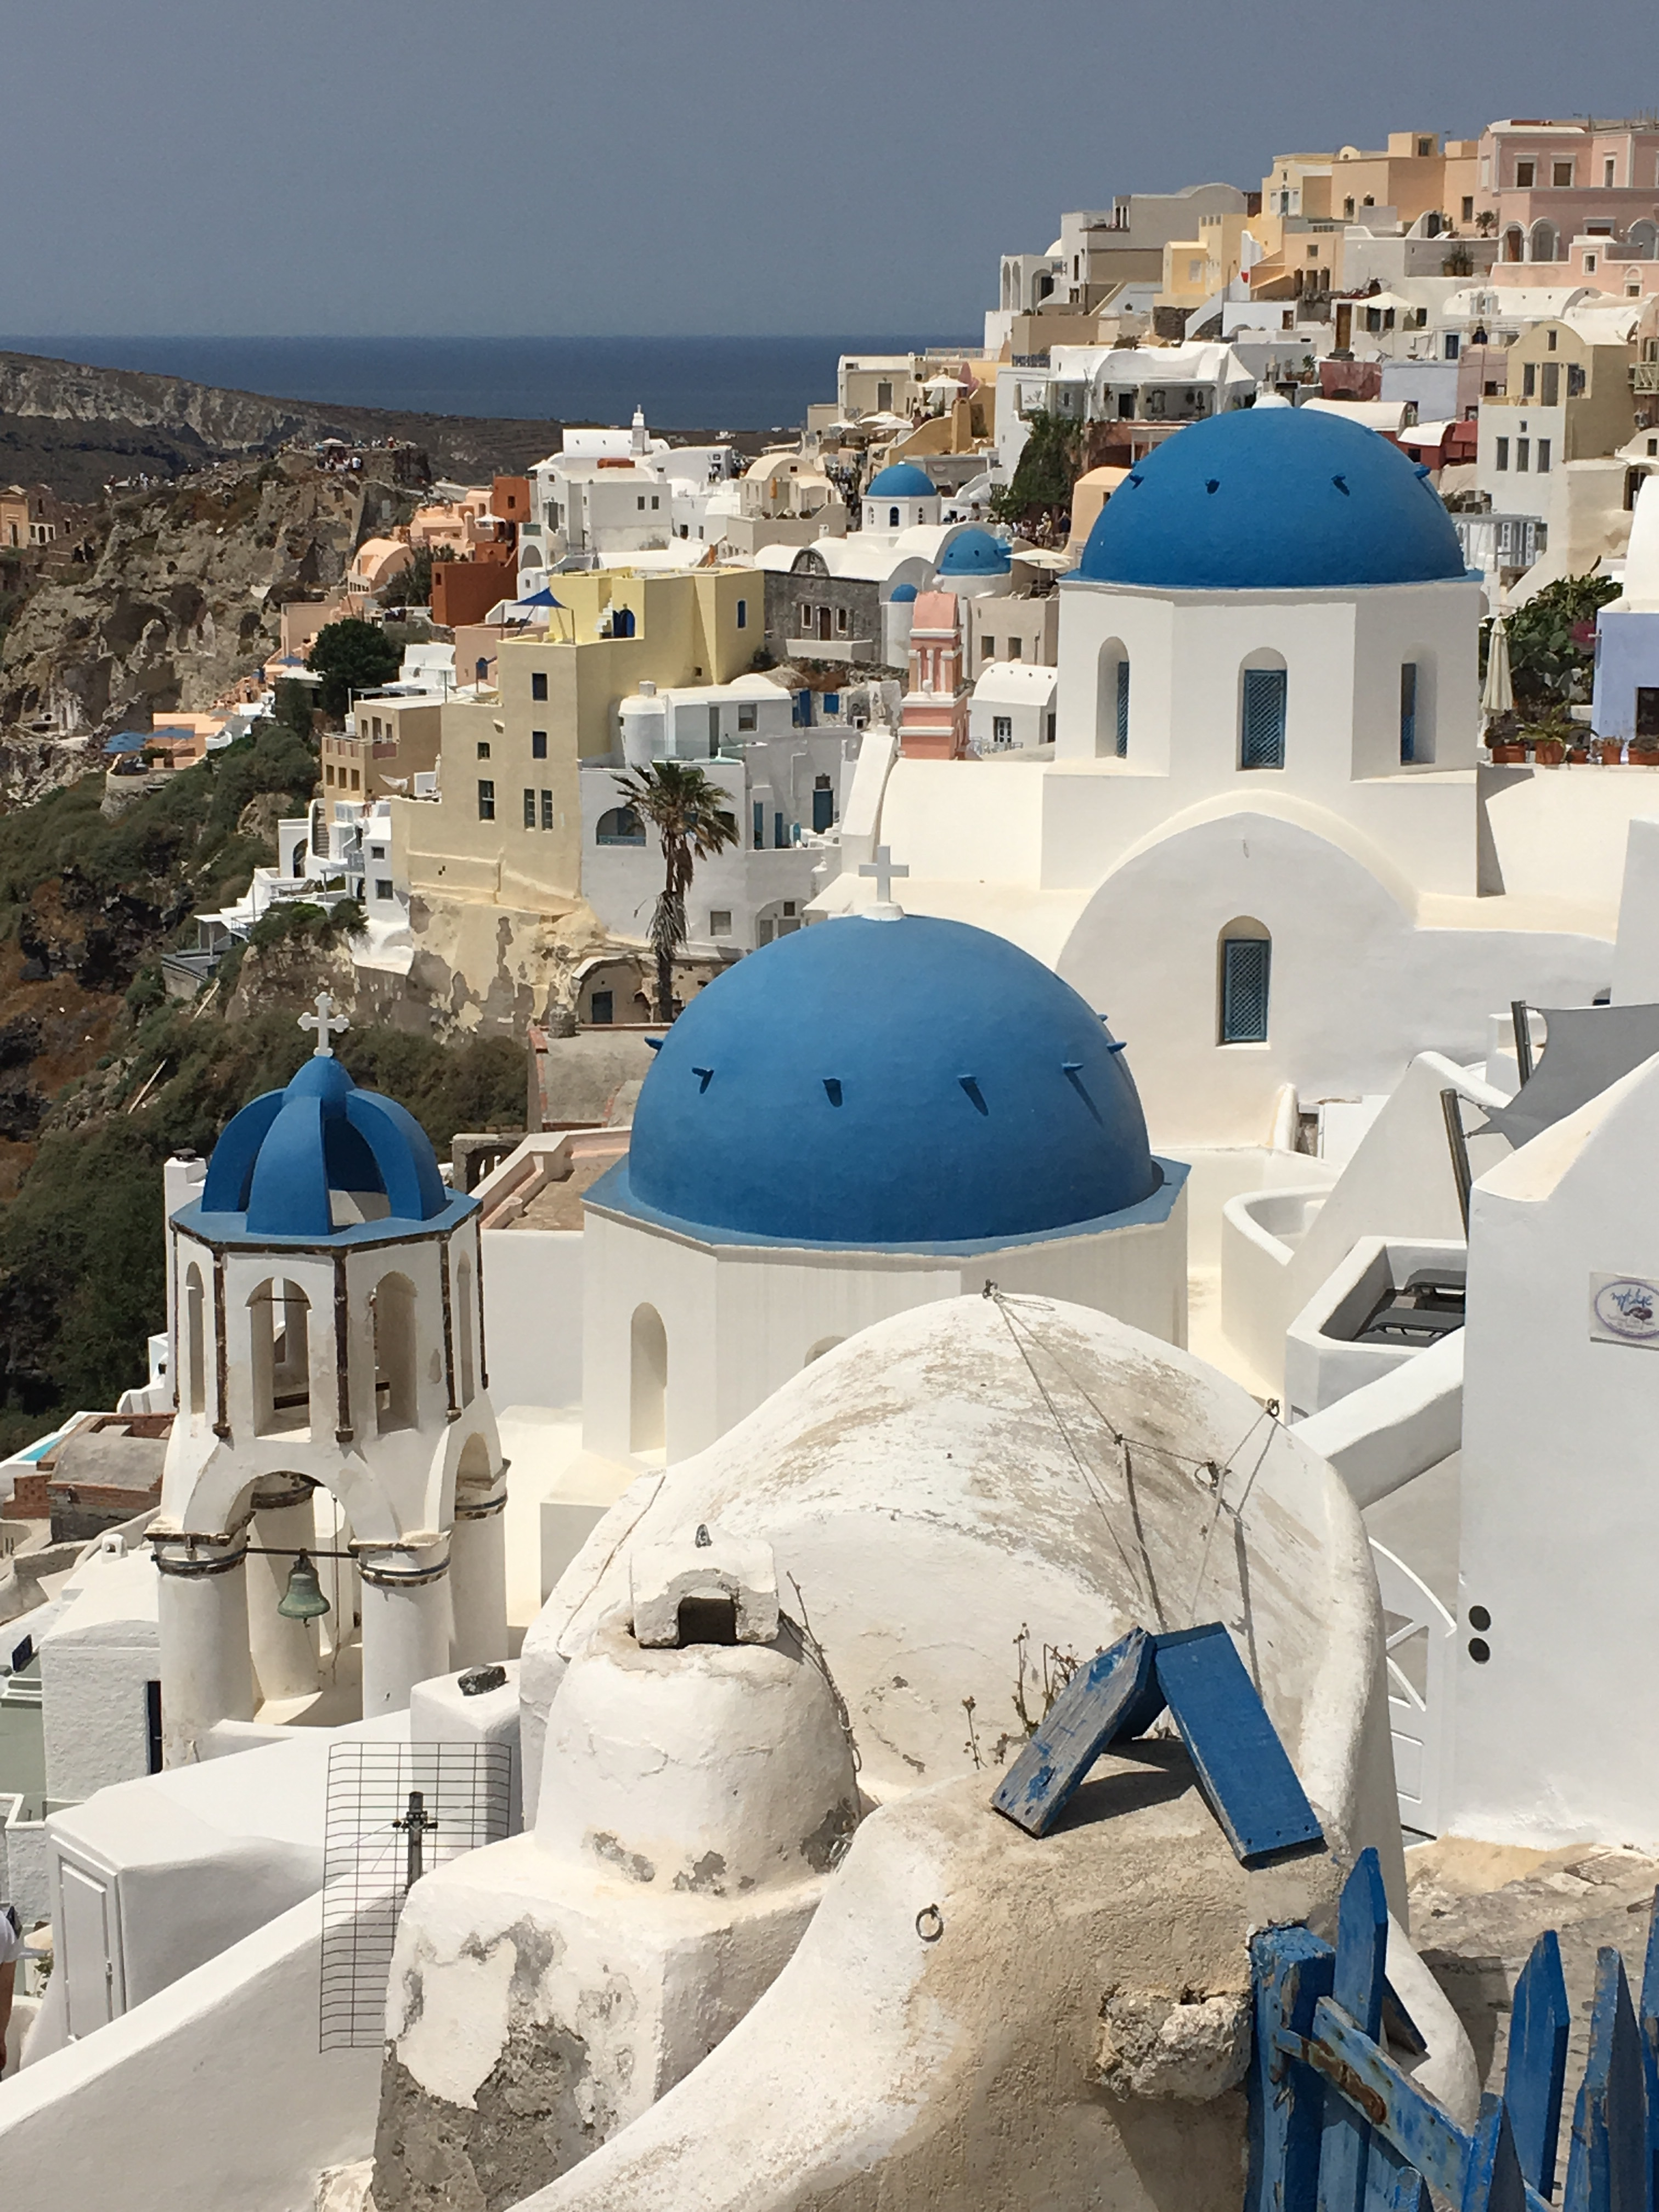 Blue domed churches of Oia. Brownell. 2019